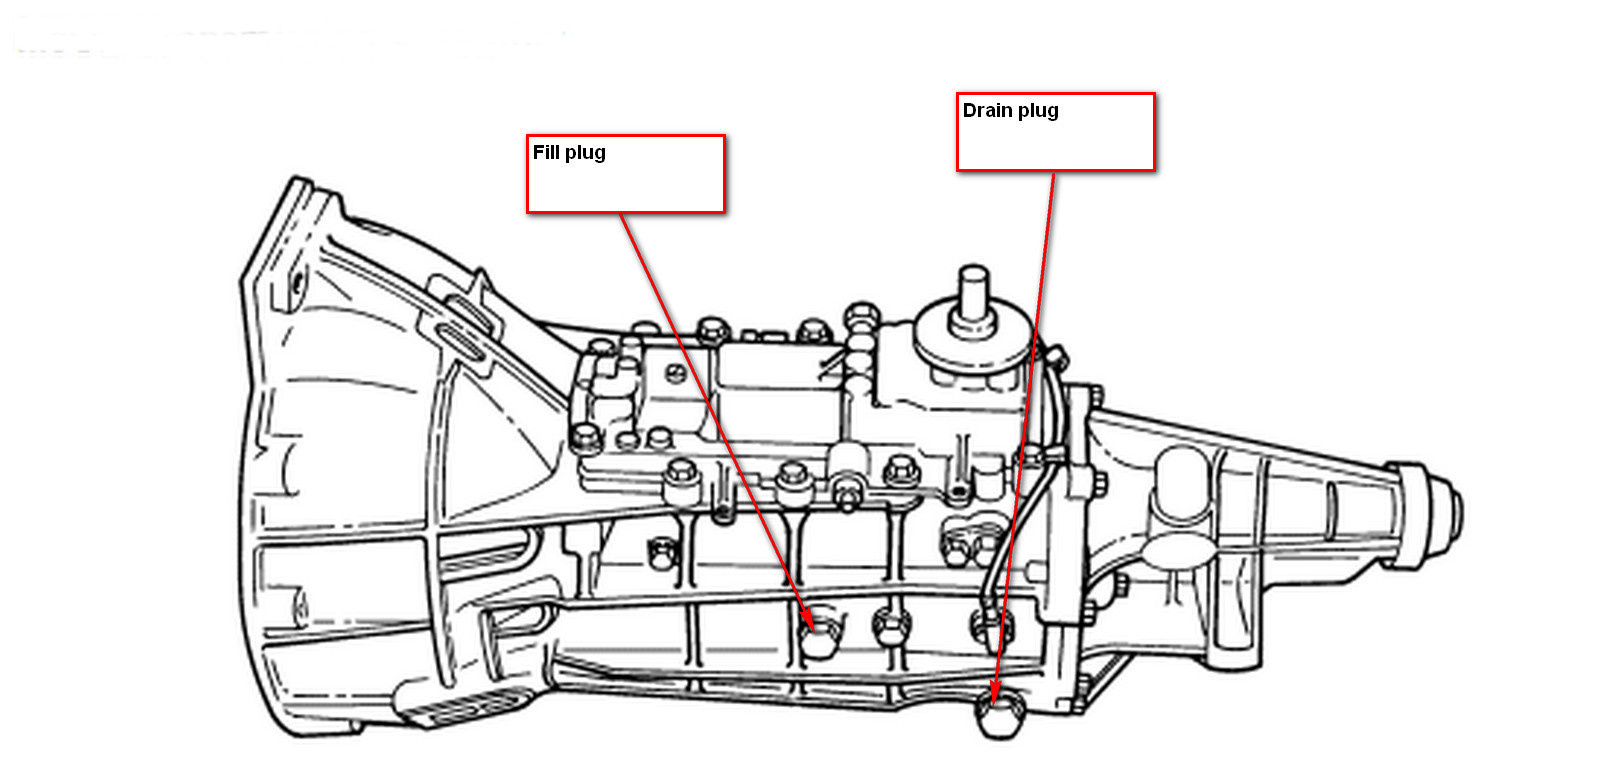 ford ranger questions how do you fill transmission oil in 91 ford rh cargurus com 2002 ford explorer transmission parts 2002 ford explorer transmission wiring diagram